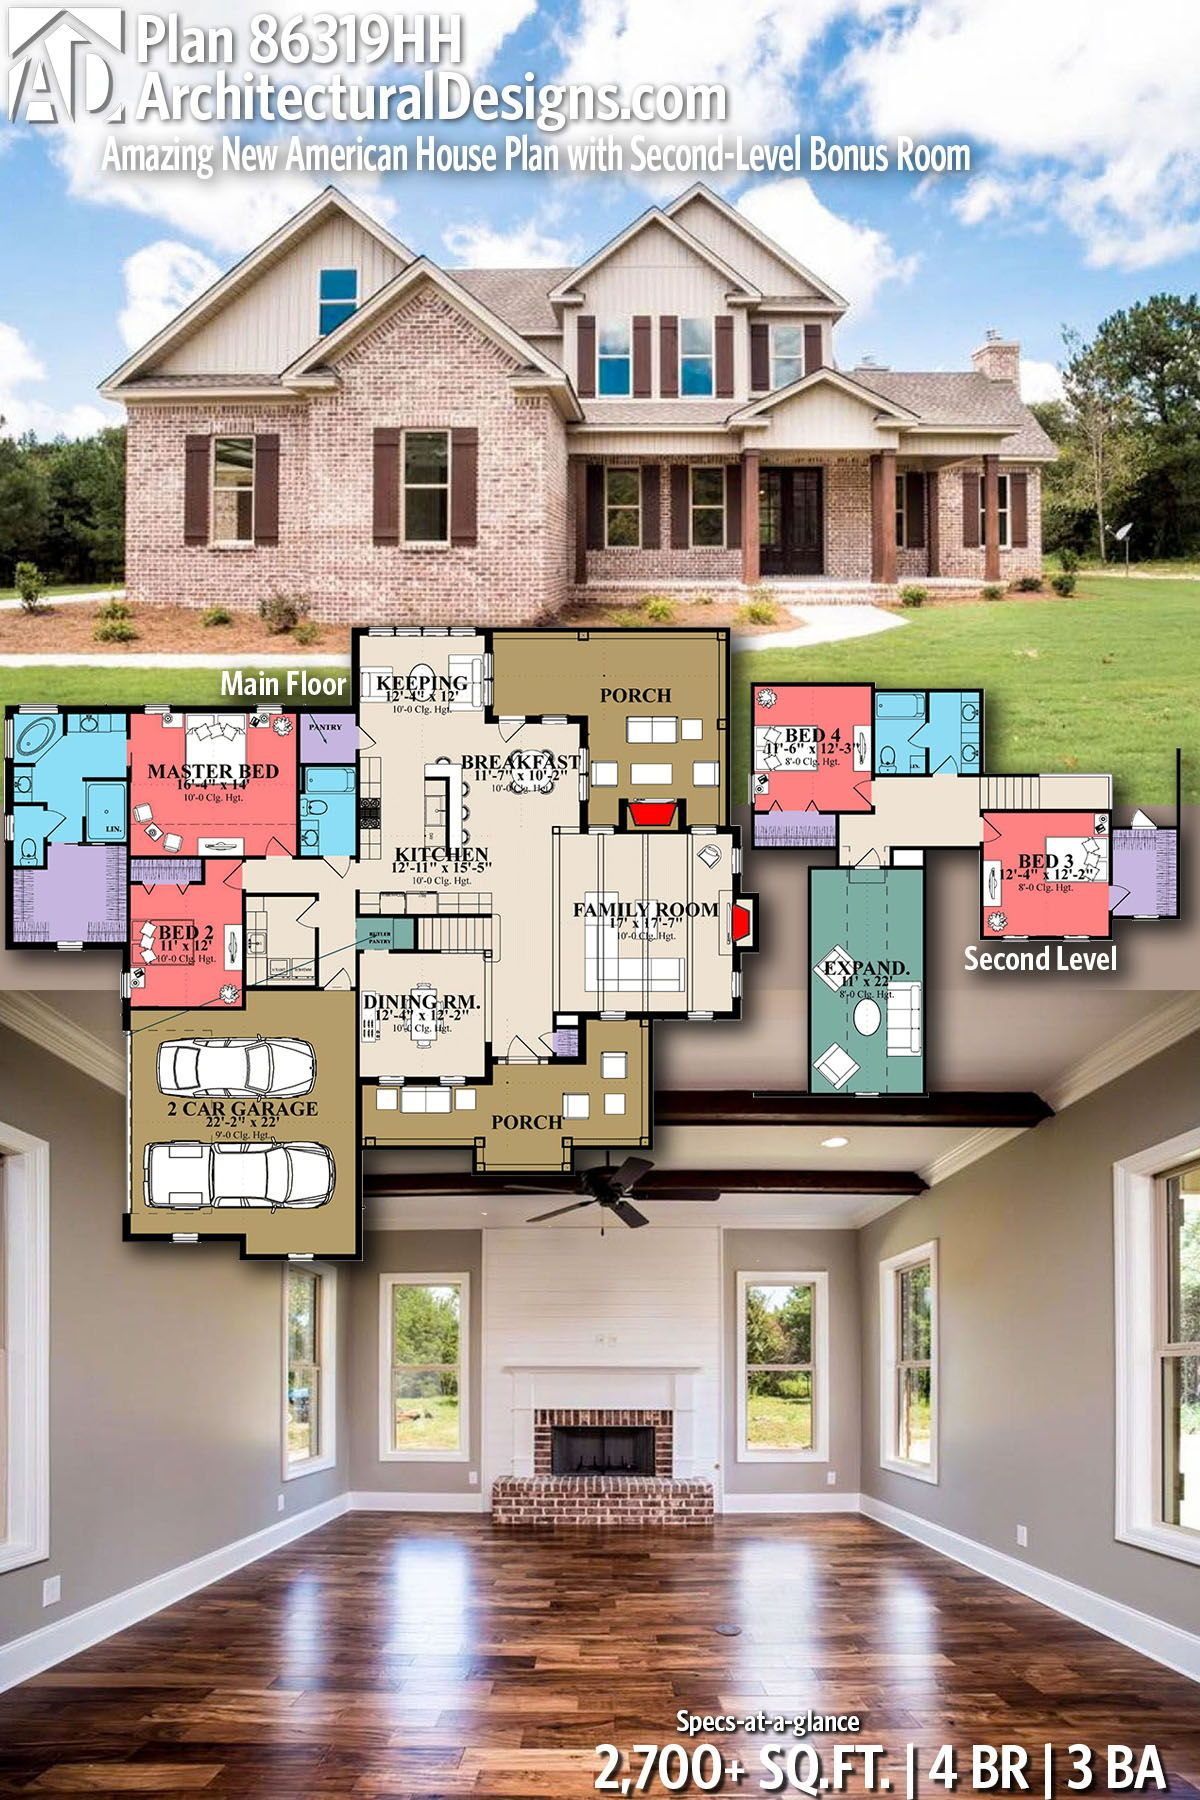 Plan 86319hh Amazing New American House Plan With Second Level Bonus Room American Houses House Plans Dream House Exterior